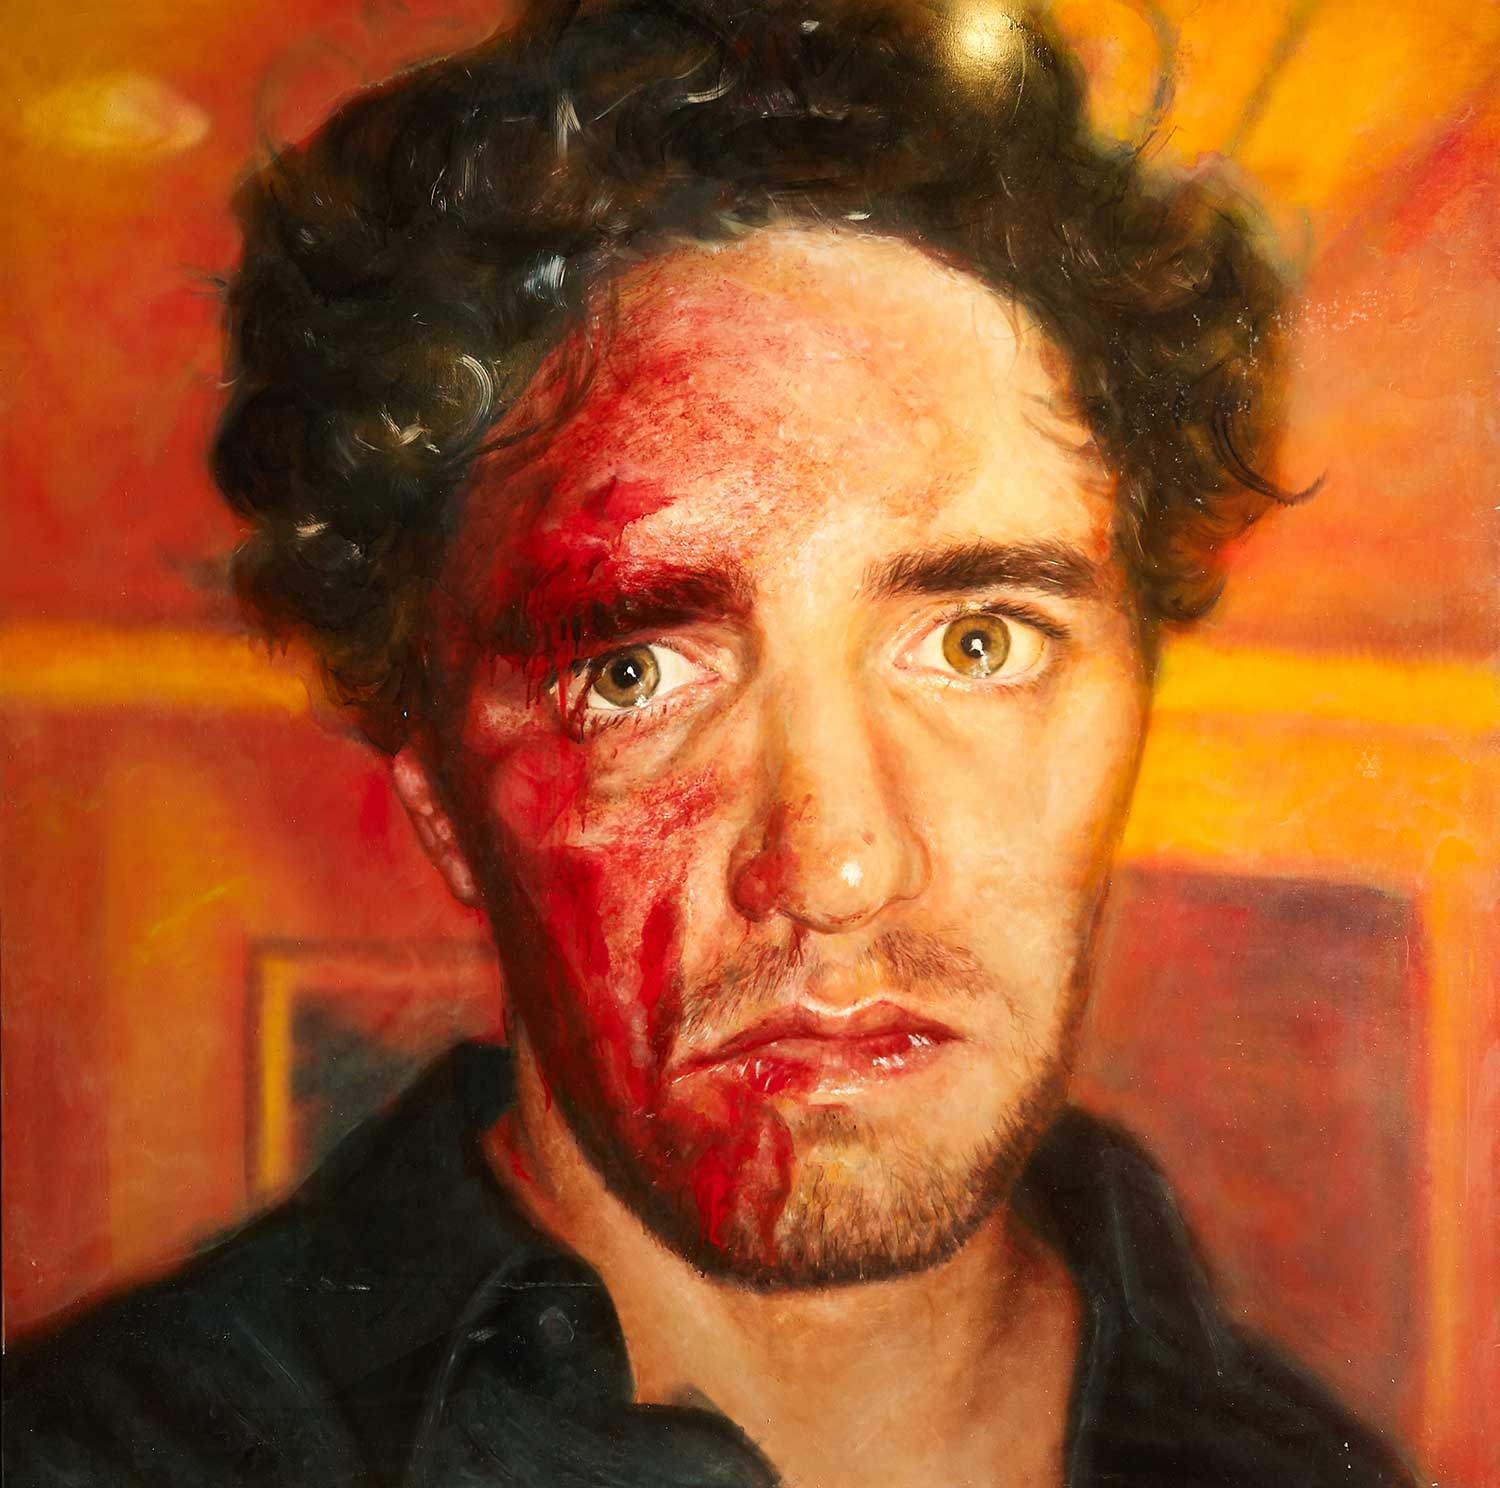 Vincent Fantauzzo, Self Portrait, Oil on Linen - hangs on the 6th floor of The Fantauzzo, Art Series Hotel